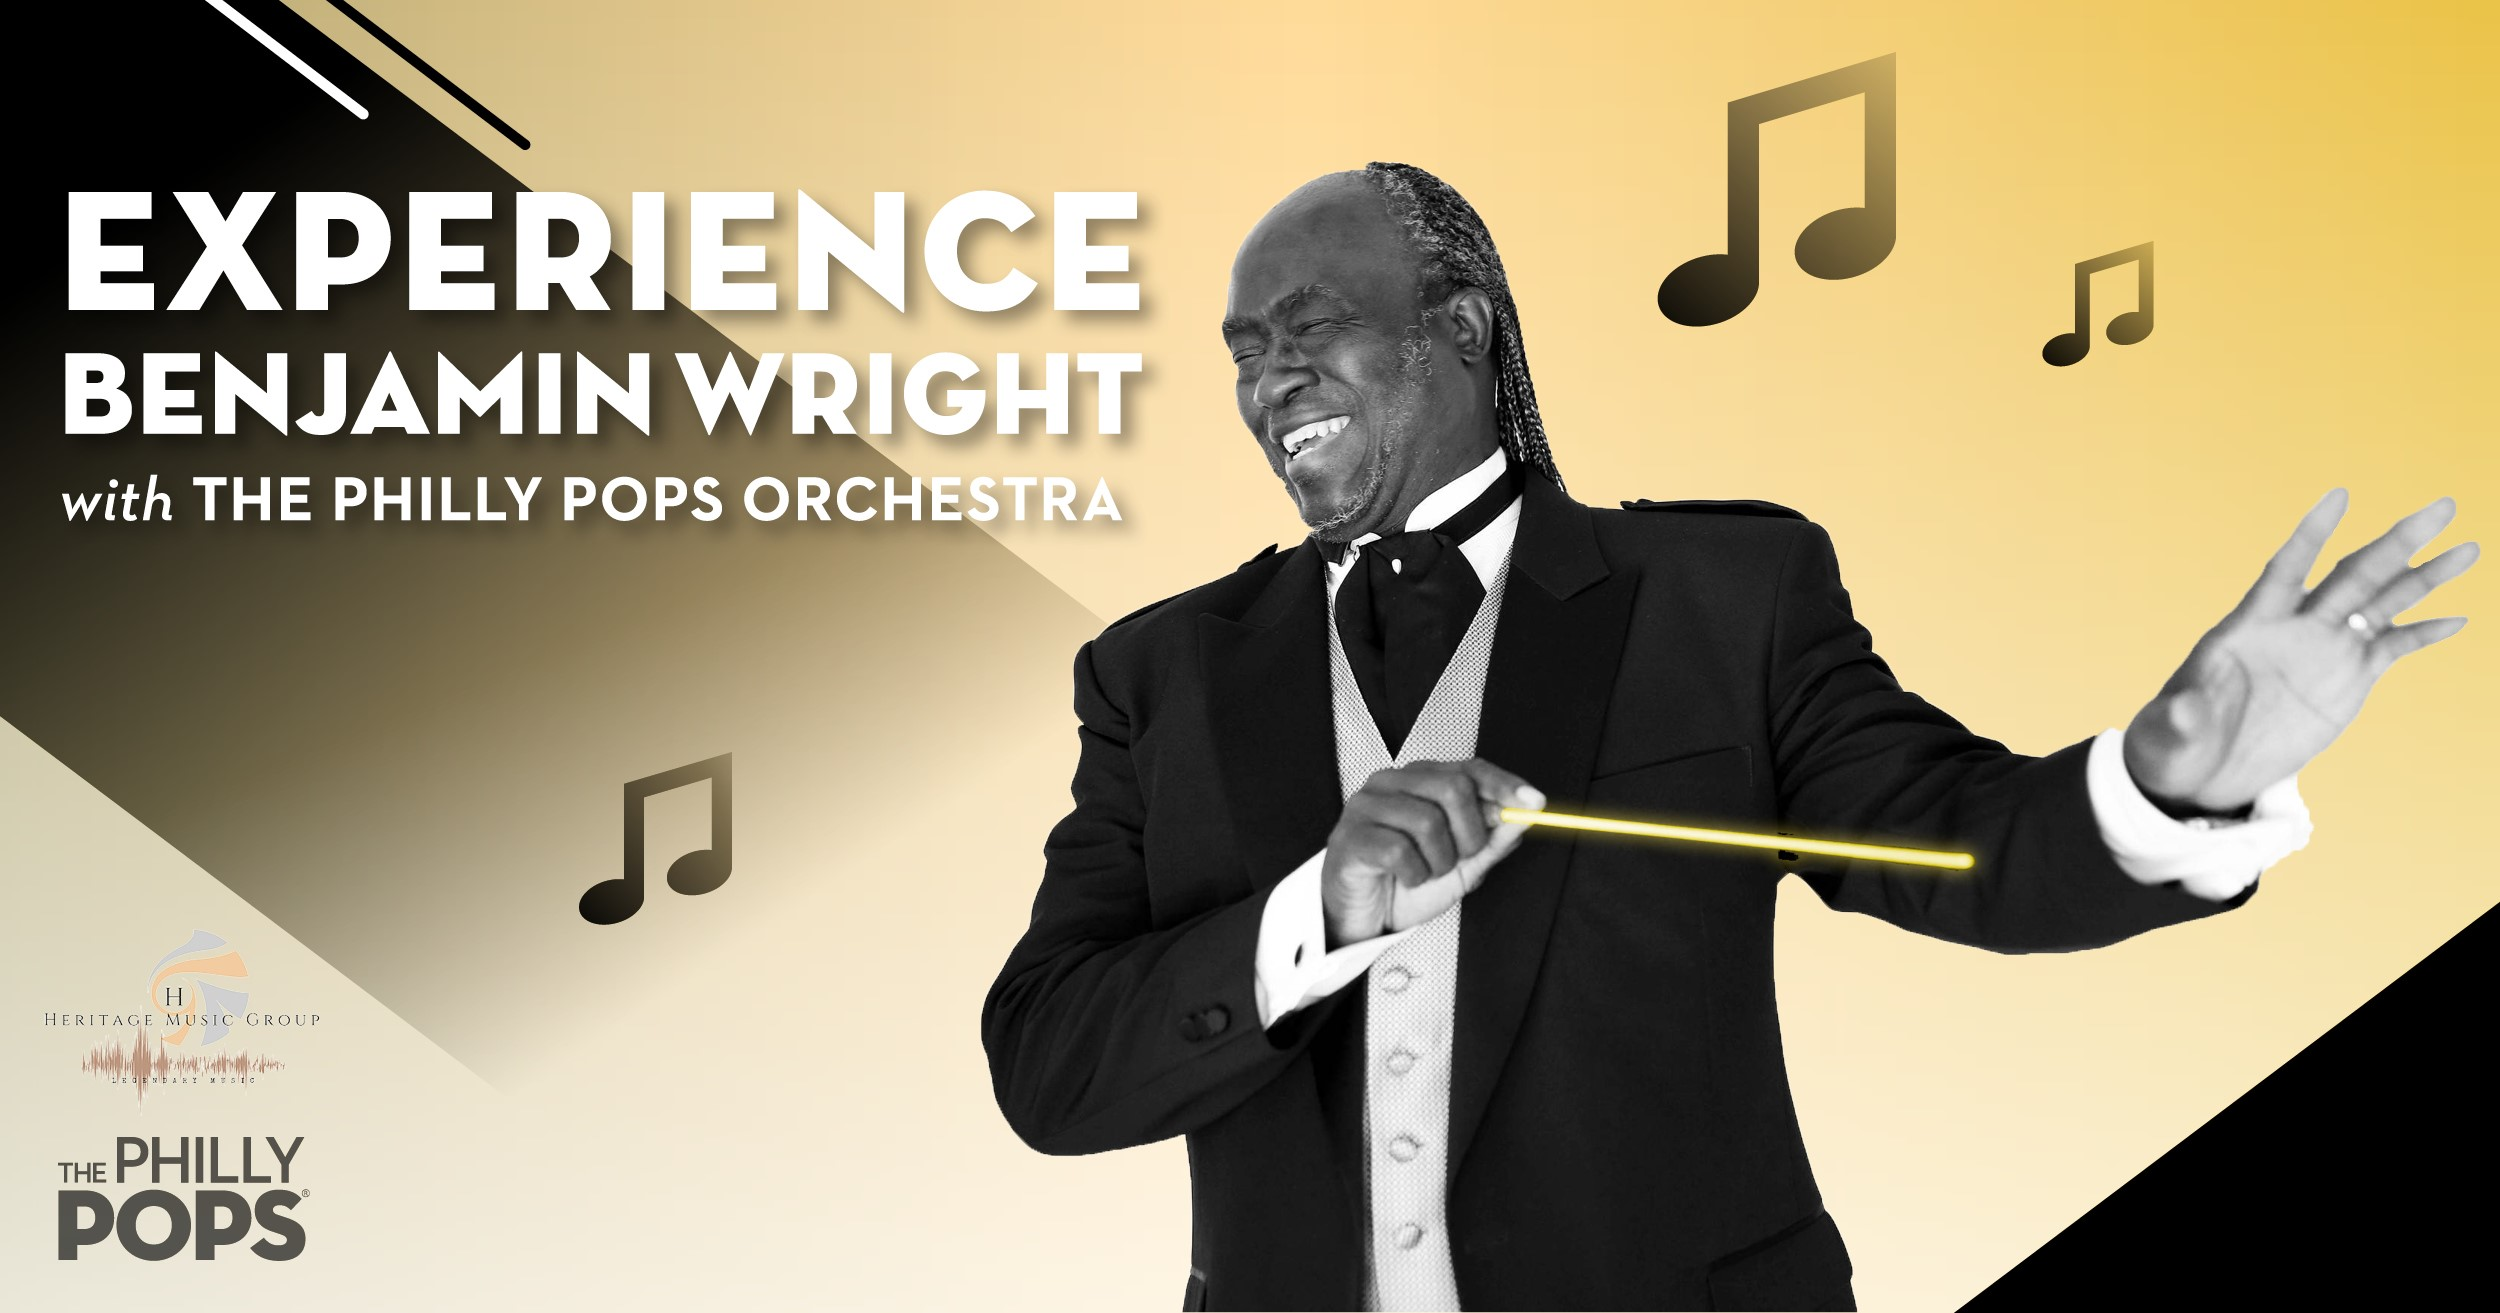 Experience Legendary Orchestrator Benjamin Wright with Philly POPS on Oct. 20 at Kimmel Center